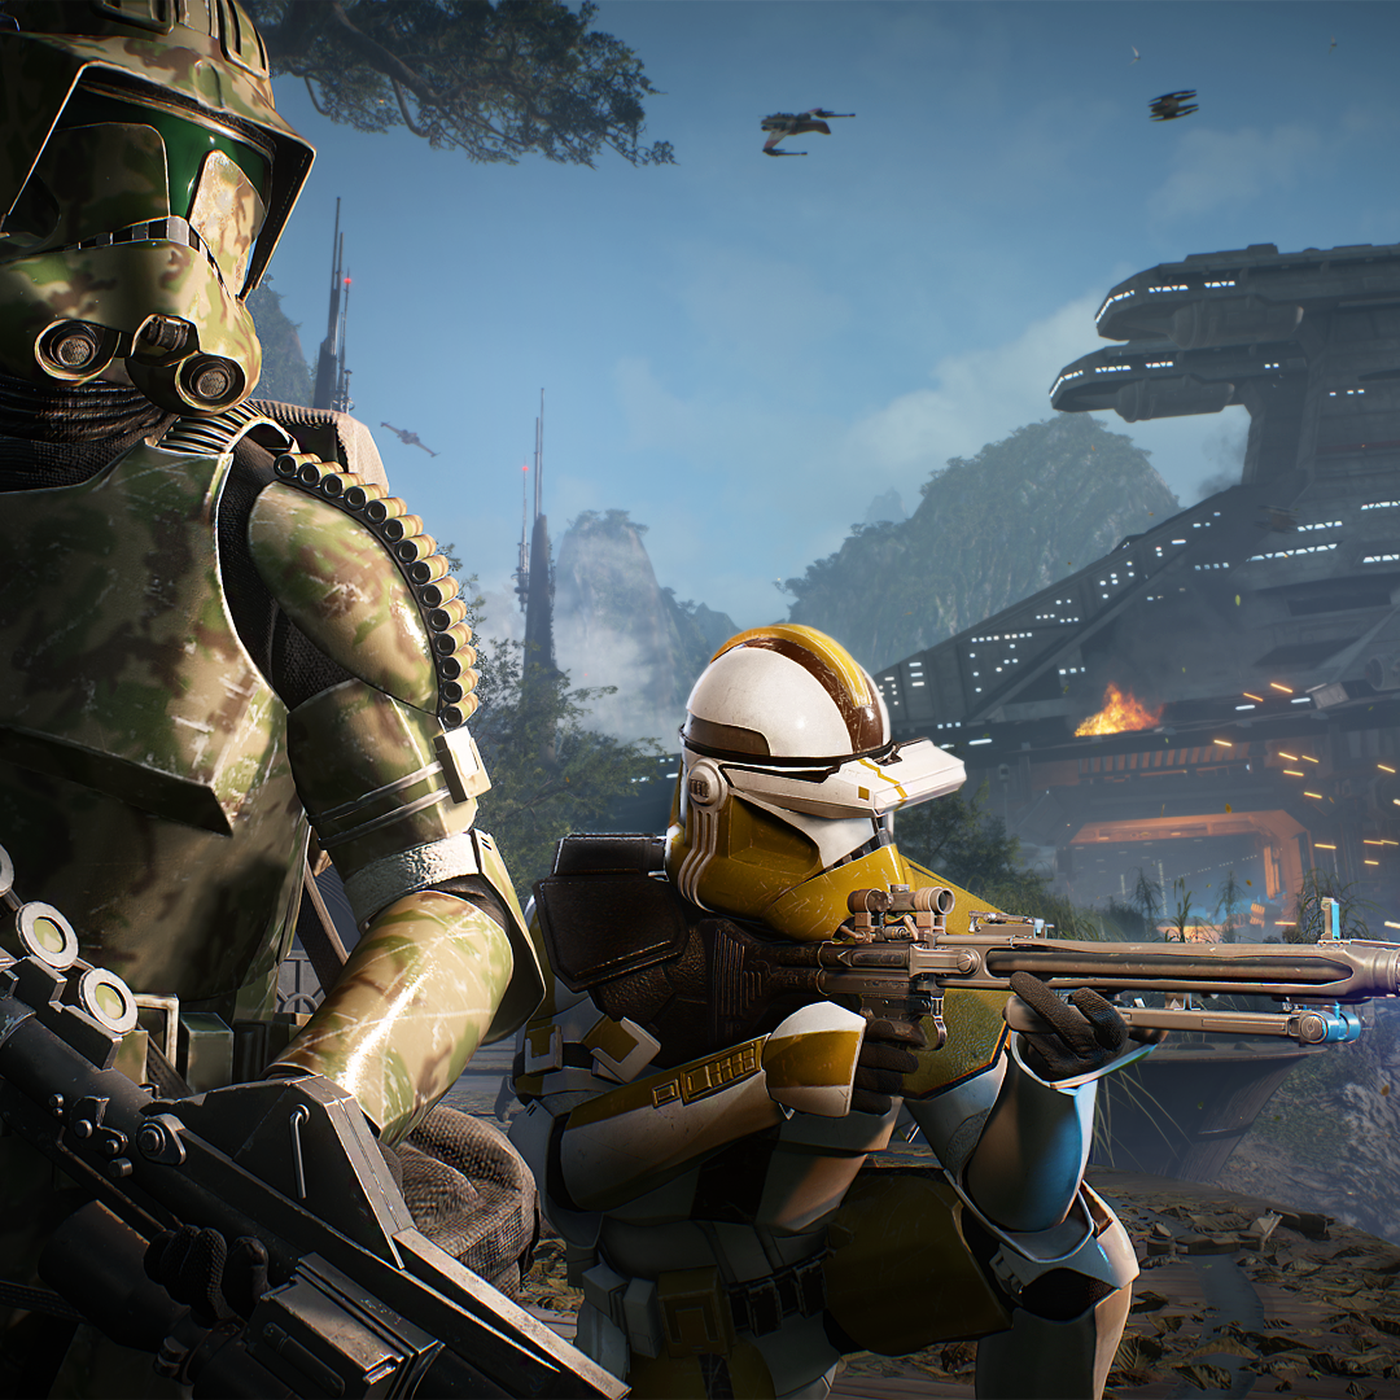 Star Wars Battlefront 2 Adds Elite Clone Troopers In Latest Update